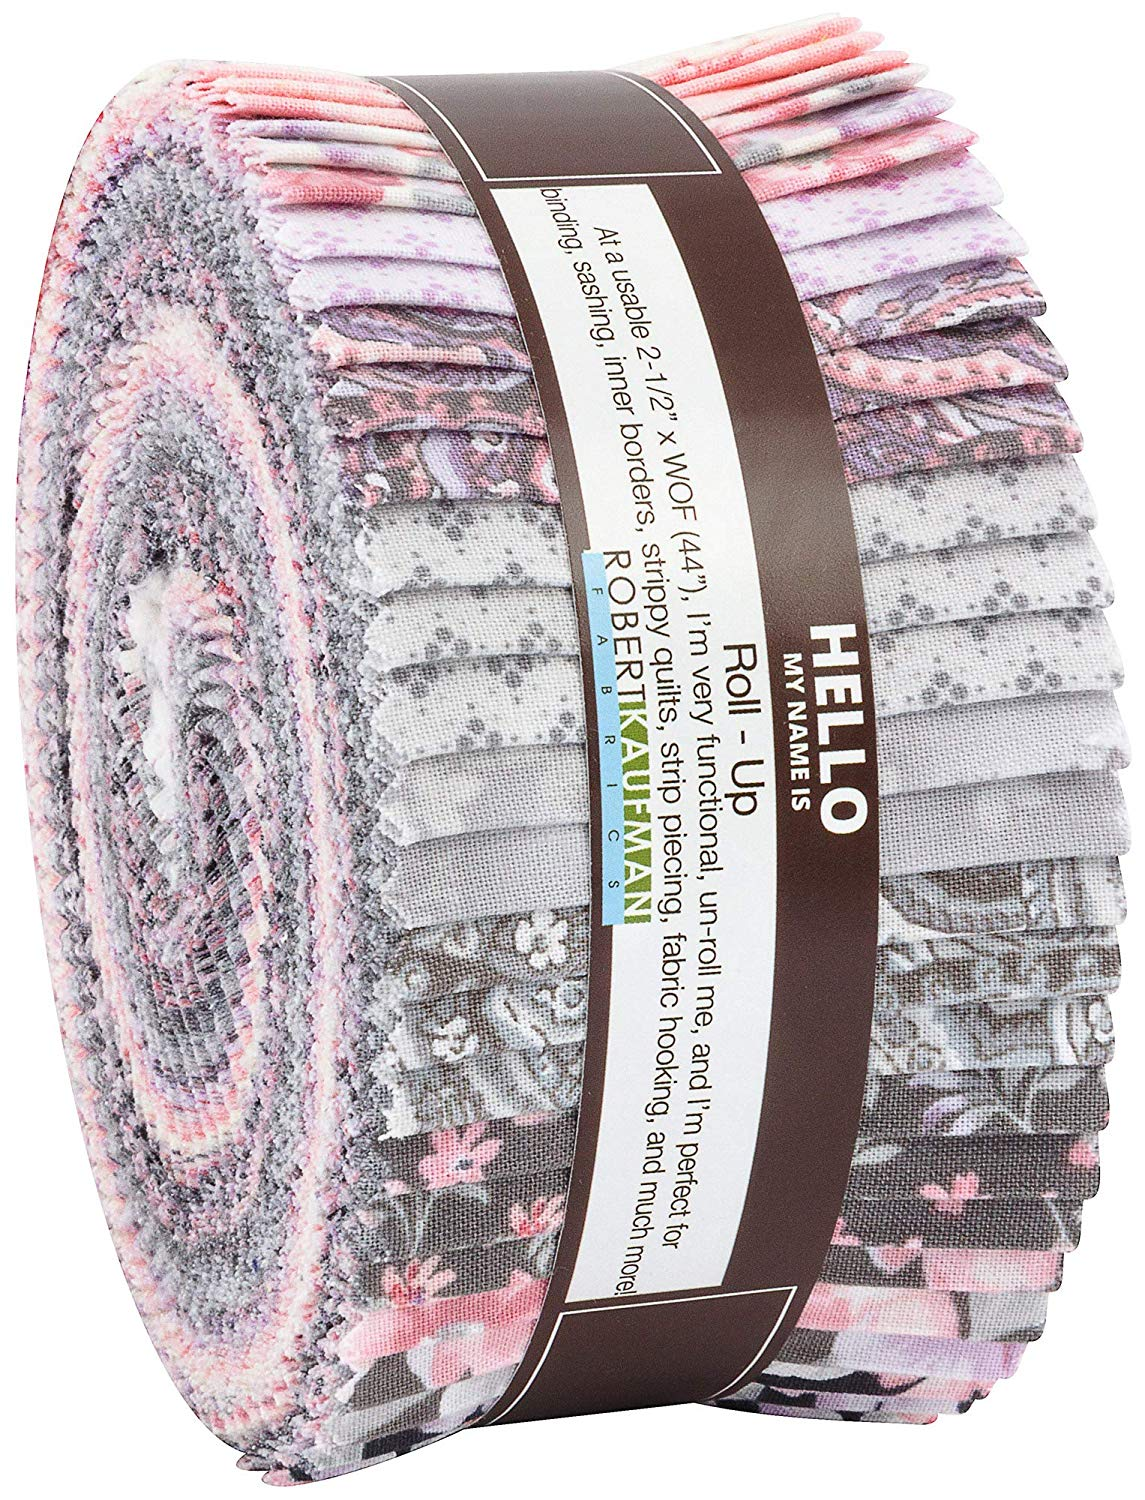 Woodside Blossom Vintage Roll Up 40 2.5-inch Strips Jelly Roll Robert Kaufman Fabrics RU-751-40